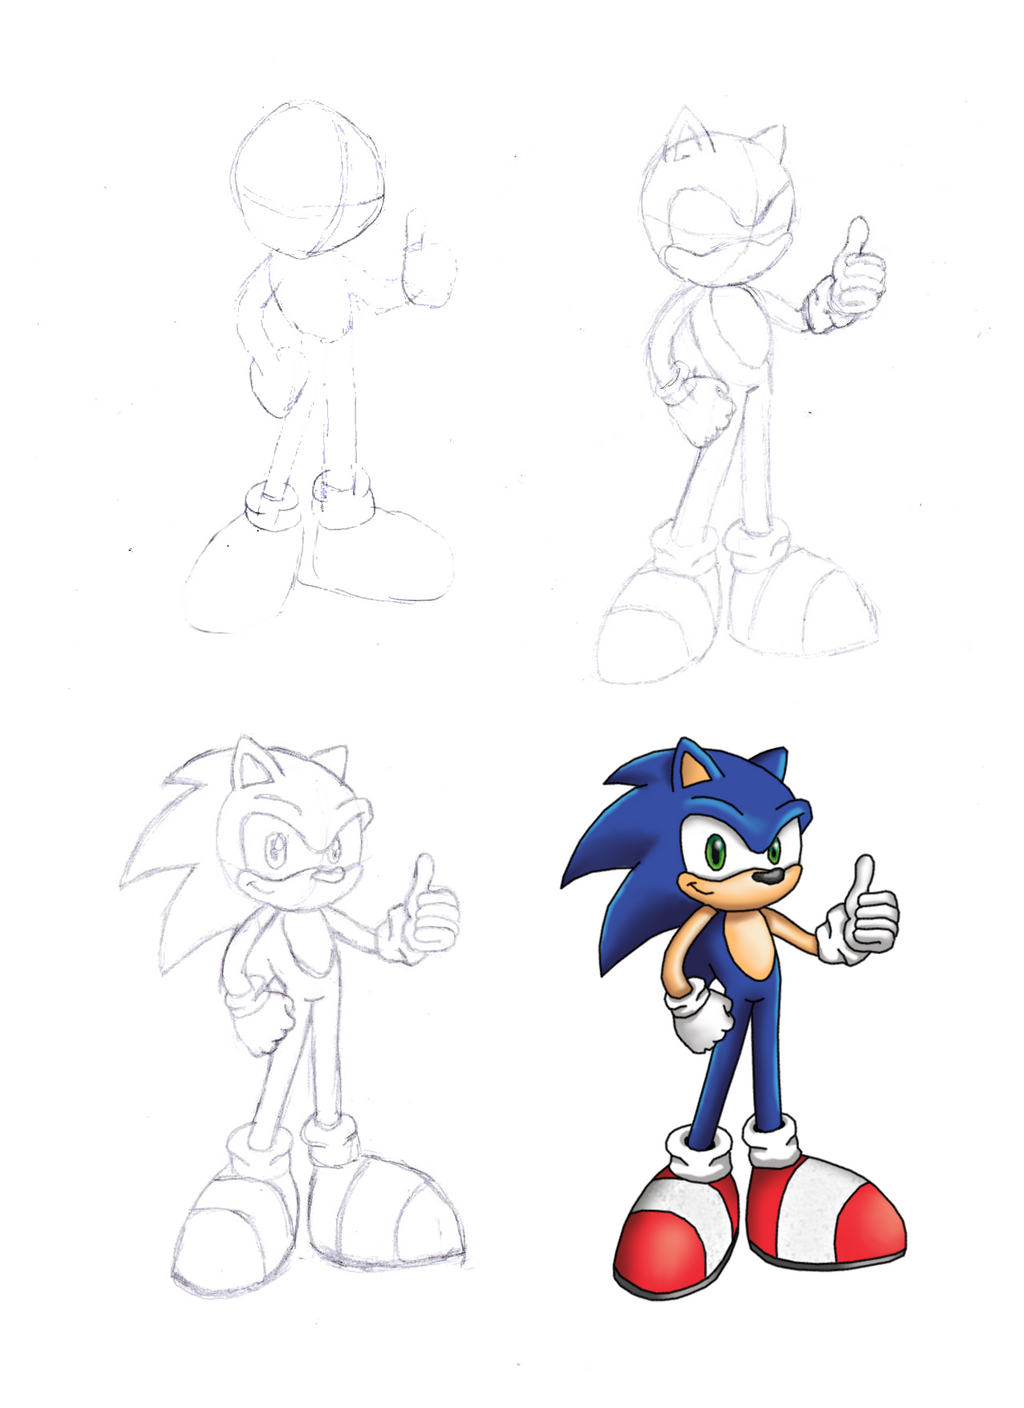 How To Draw Sonic The Hedgehog Step By Step By Jaukuwa On Deviantart